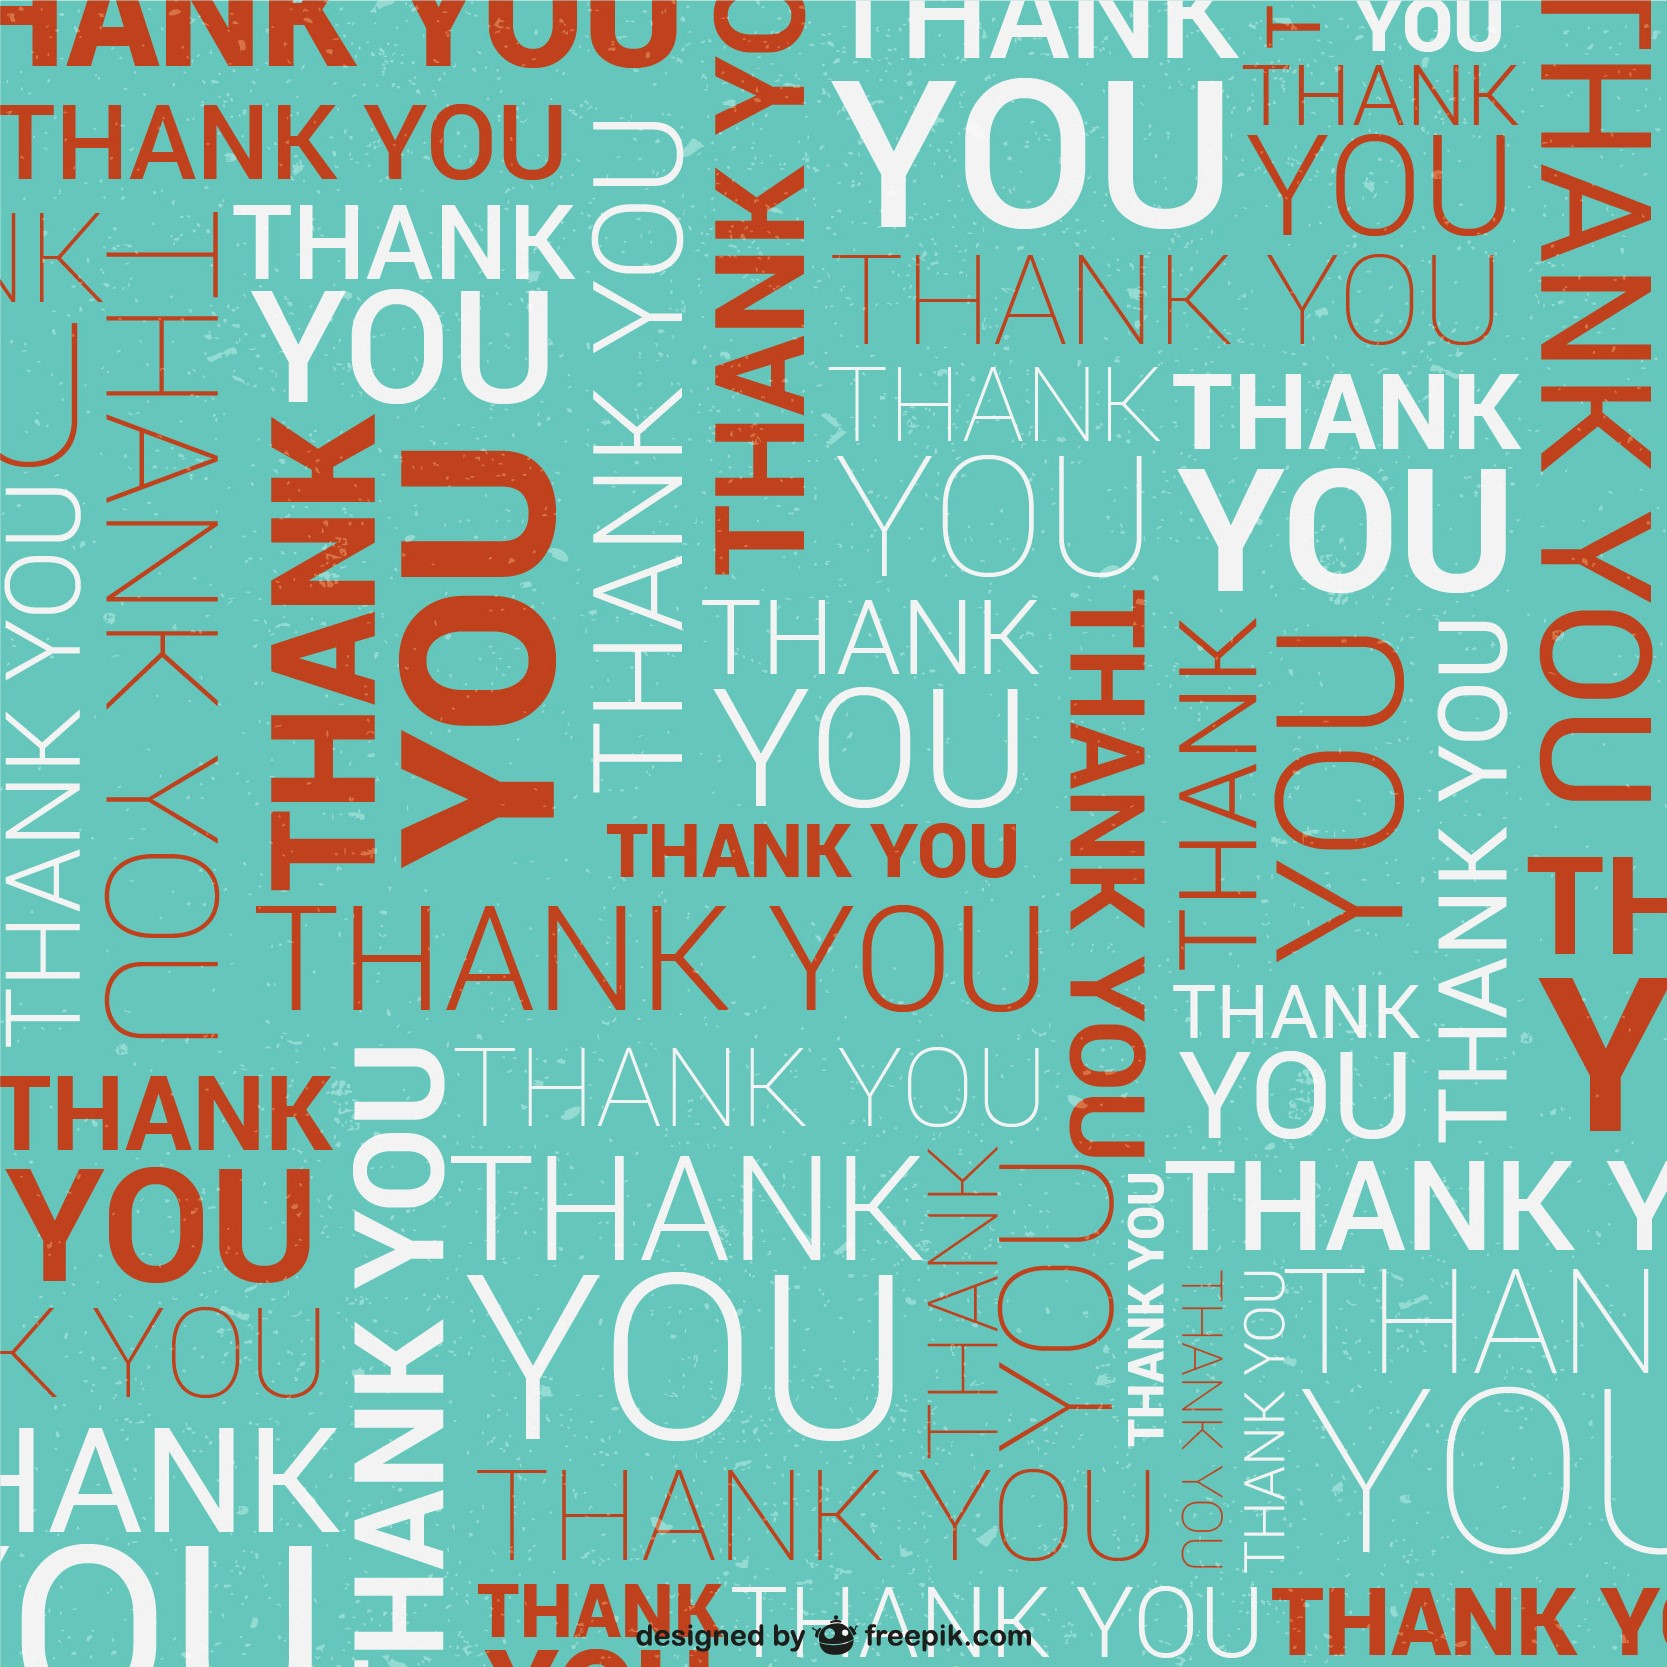 Quotes On Thank You Notes: Quotes About Thank You Notes (54 Quotes